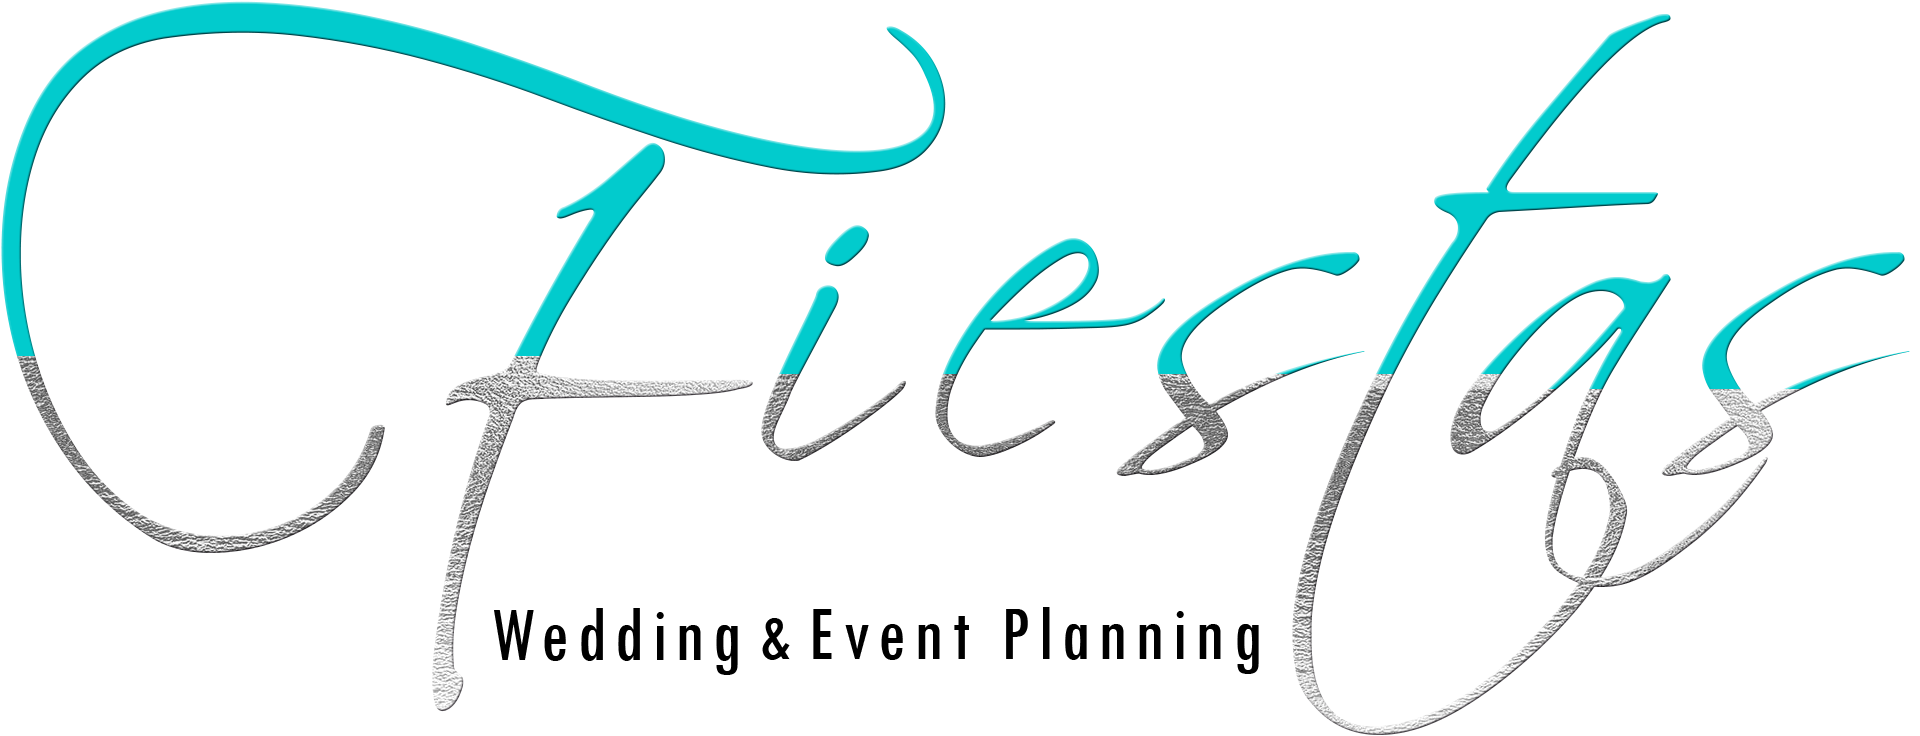 Fiestas Wedding & Events